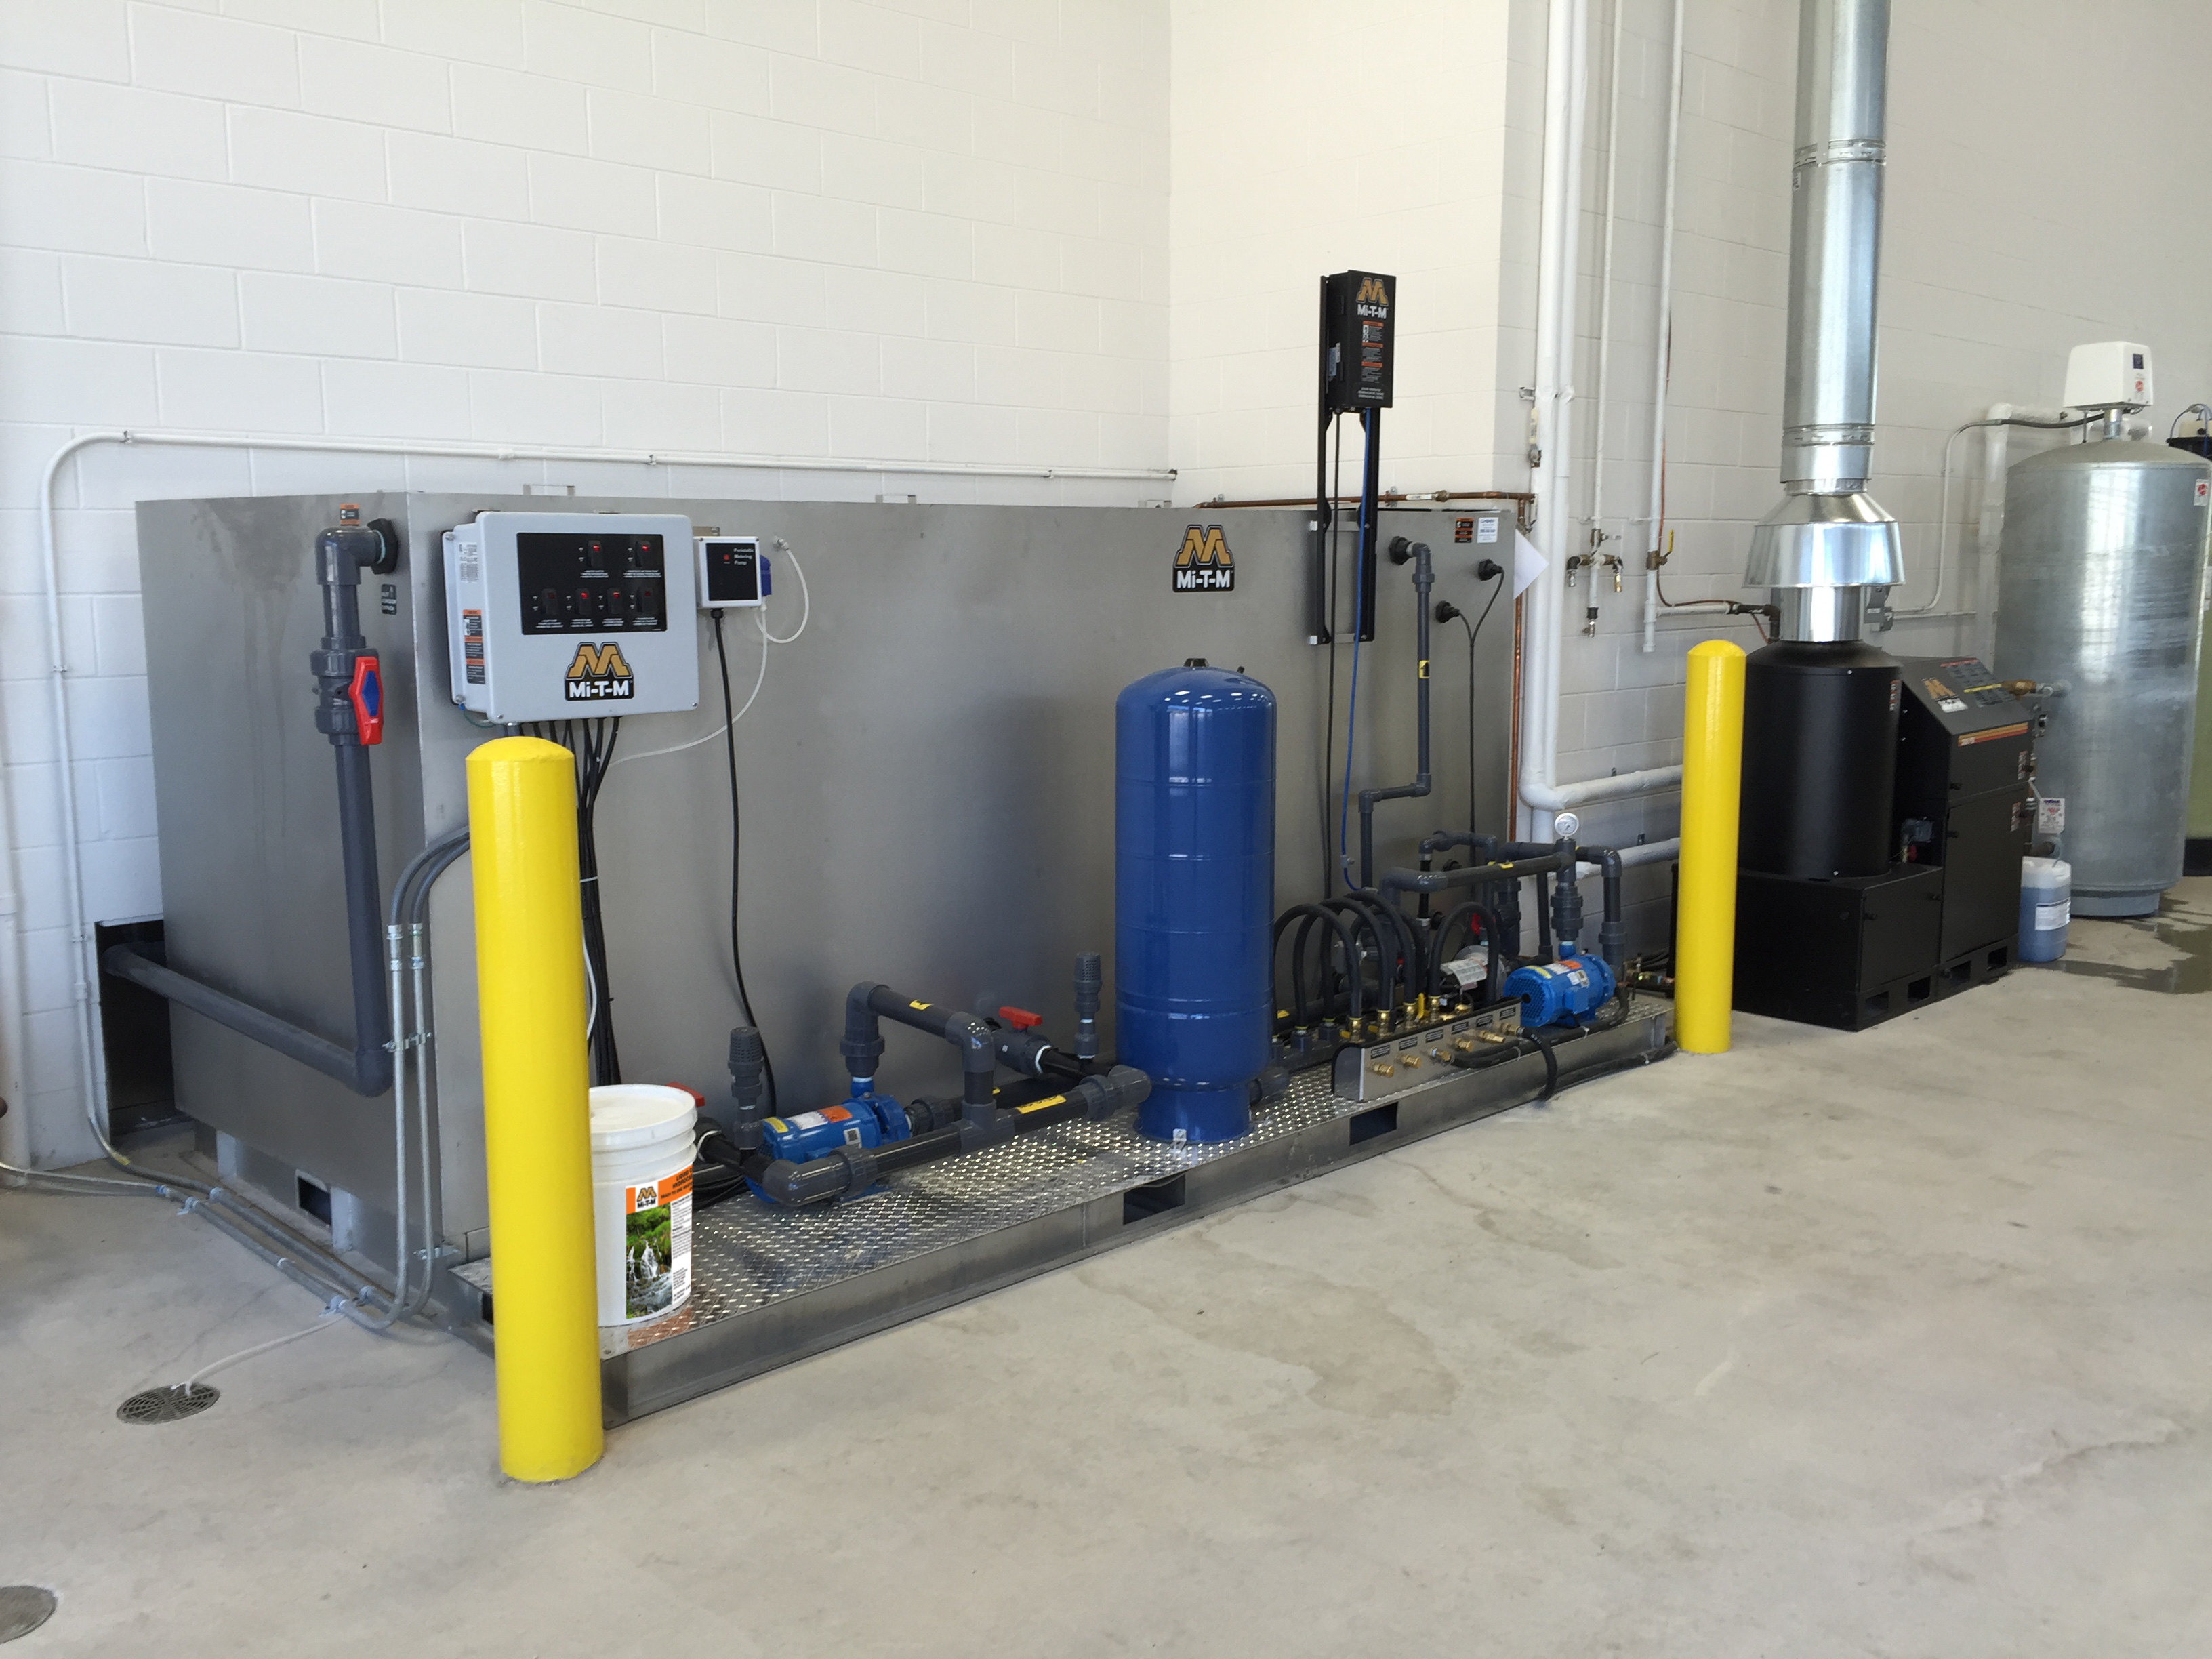 water treatment professionals at Alklean